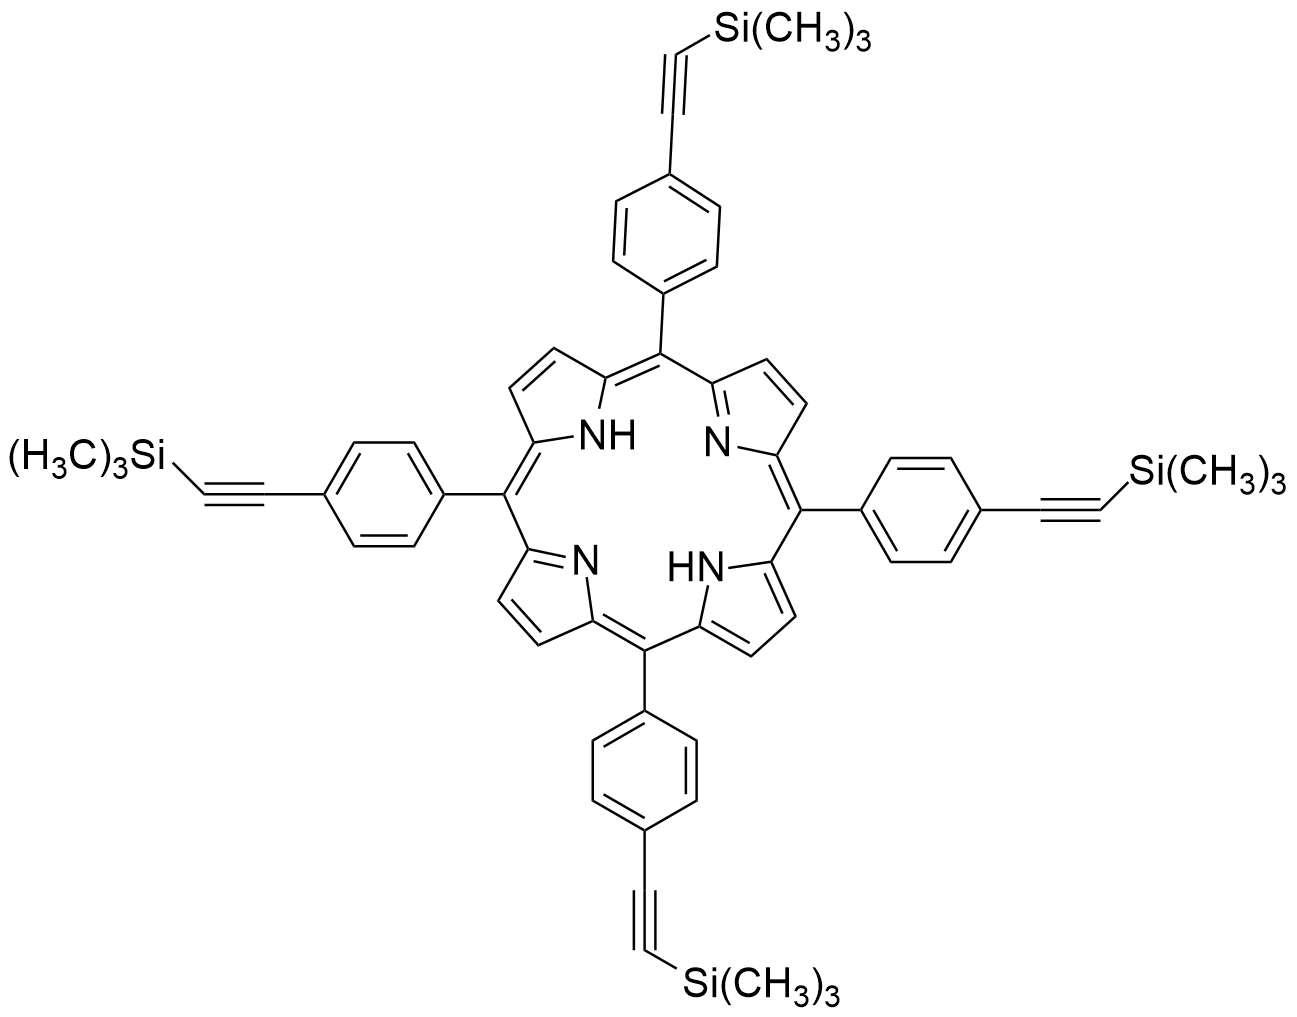 5,10,15,20-Tetrakis[4-[2-(trimethylsilyl)ethynyl]phenyl]-21H,23H-porphine